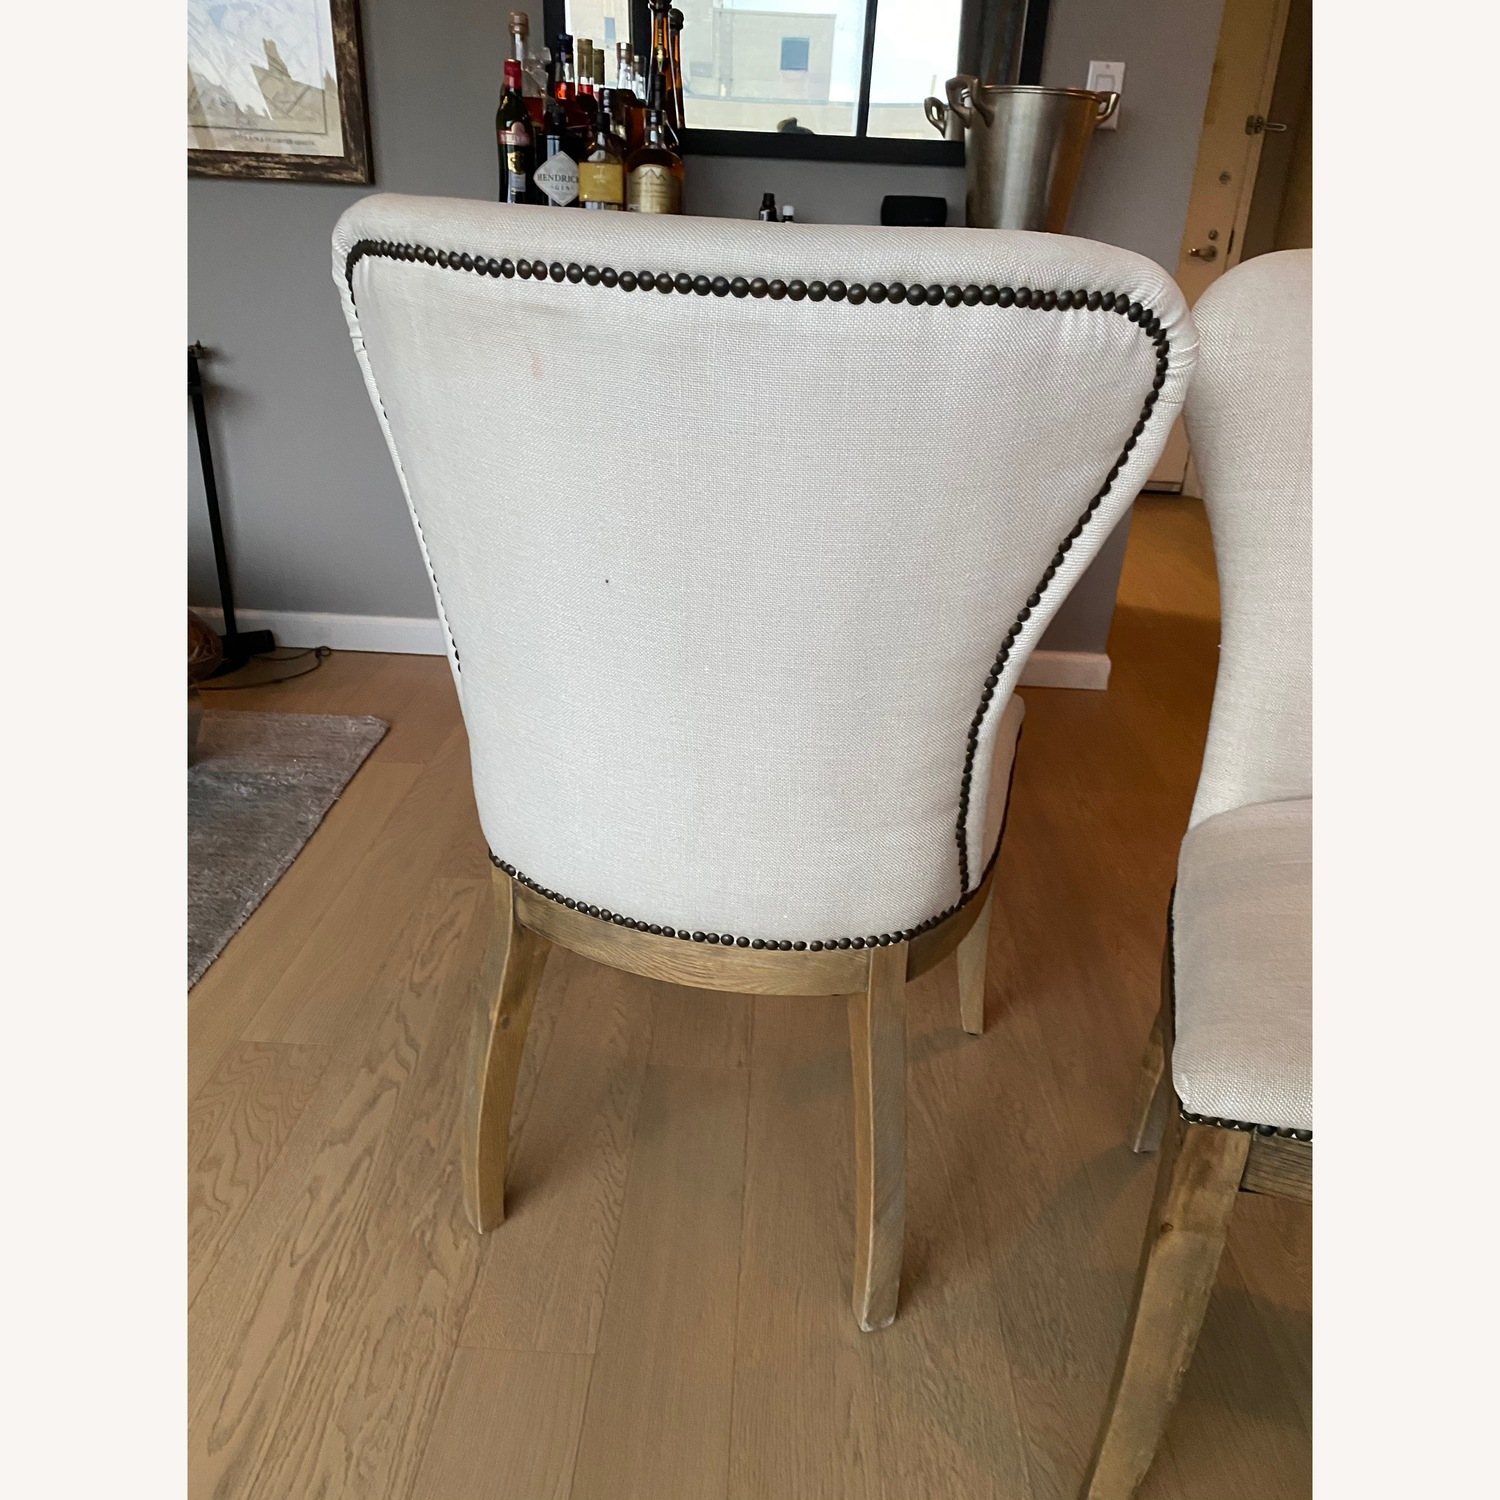 Restoration Hardware Dining Table with 2 Chairs - image-4